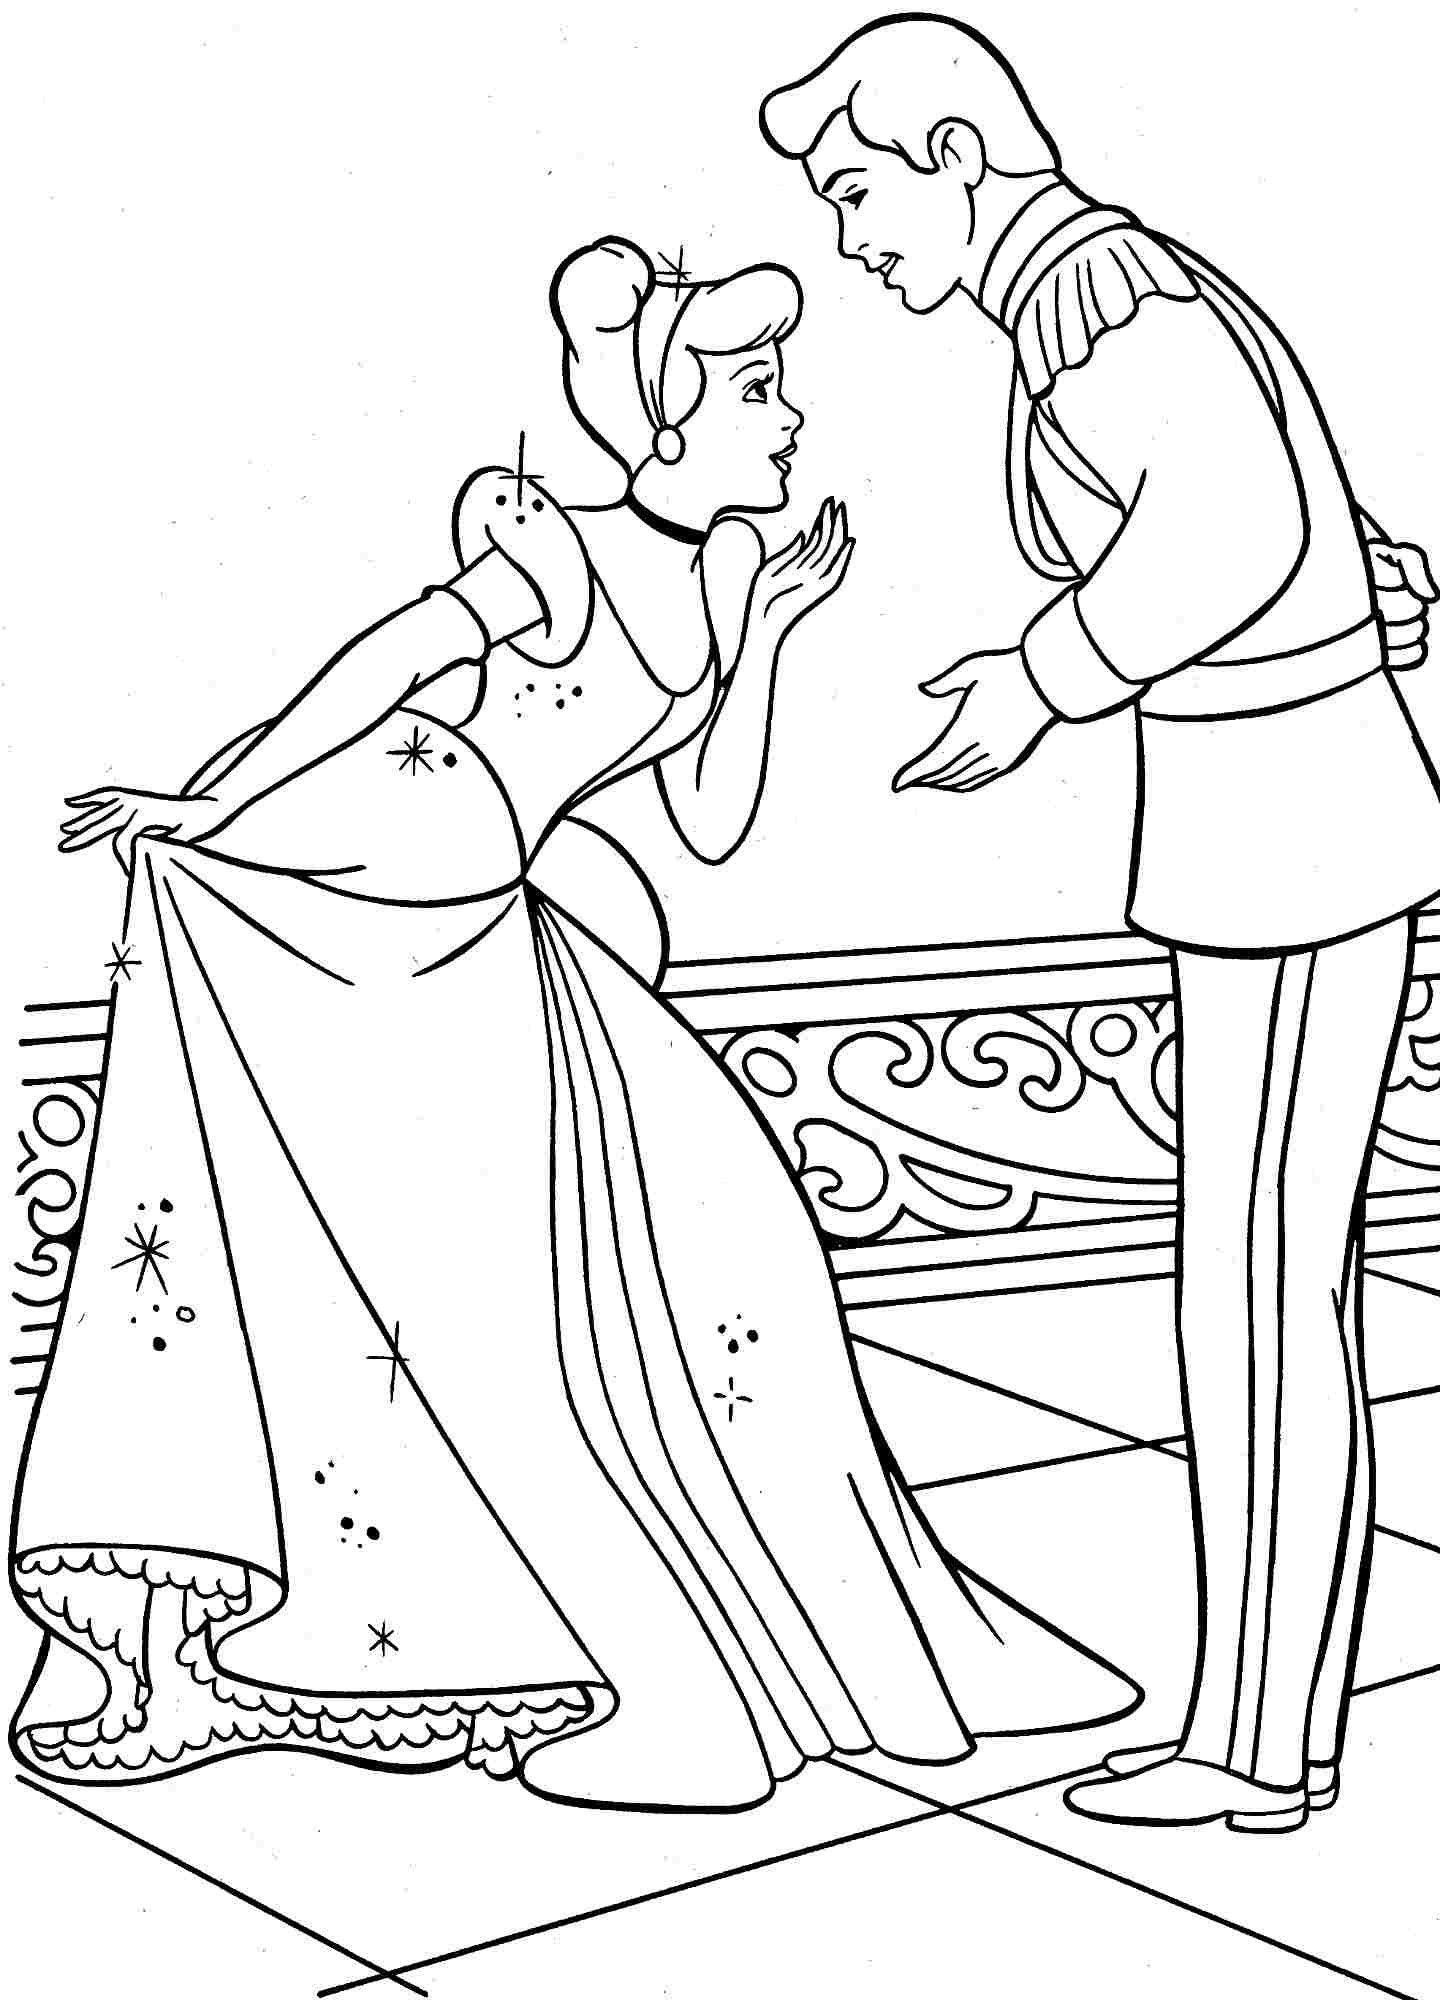 Disney Princess Cinderella Coloring Pages Games From The Thousands Of Pictur Cinderella Coloring Pages Disney Princess Coloring Pages Princess Coloring Pages